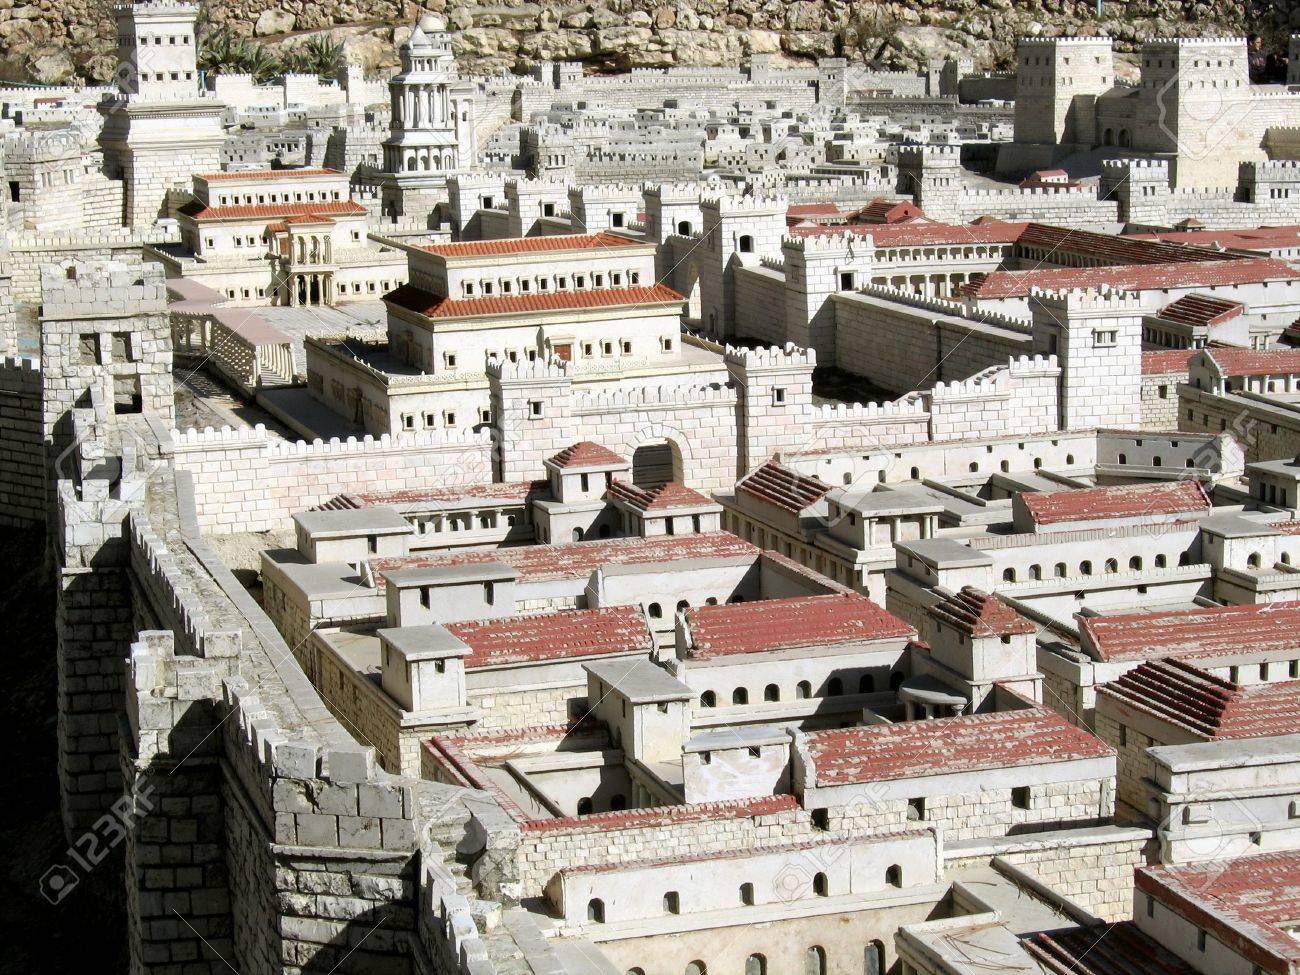 palaces of the high priest caiaphas and herod in the background